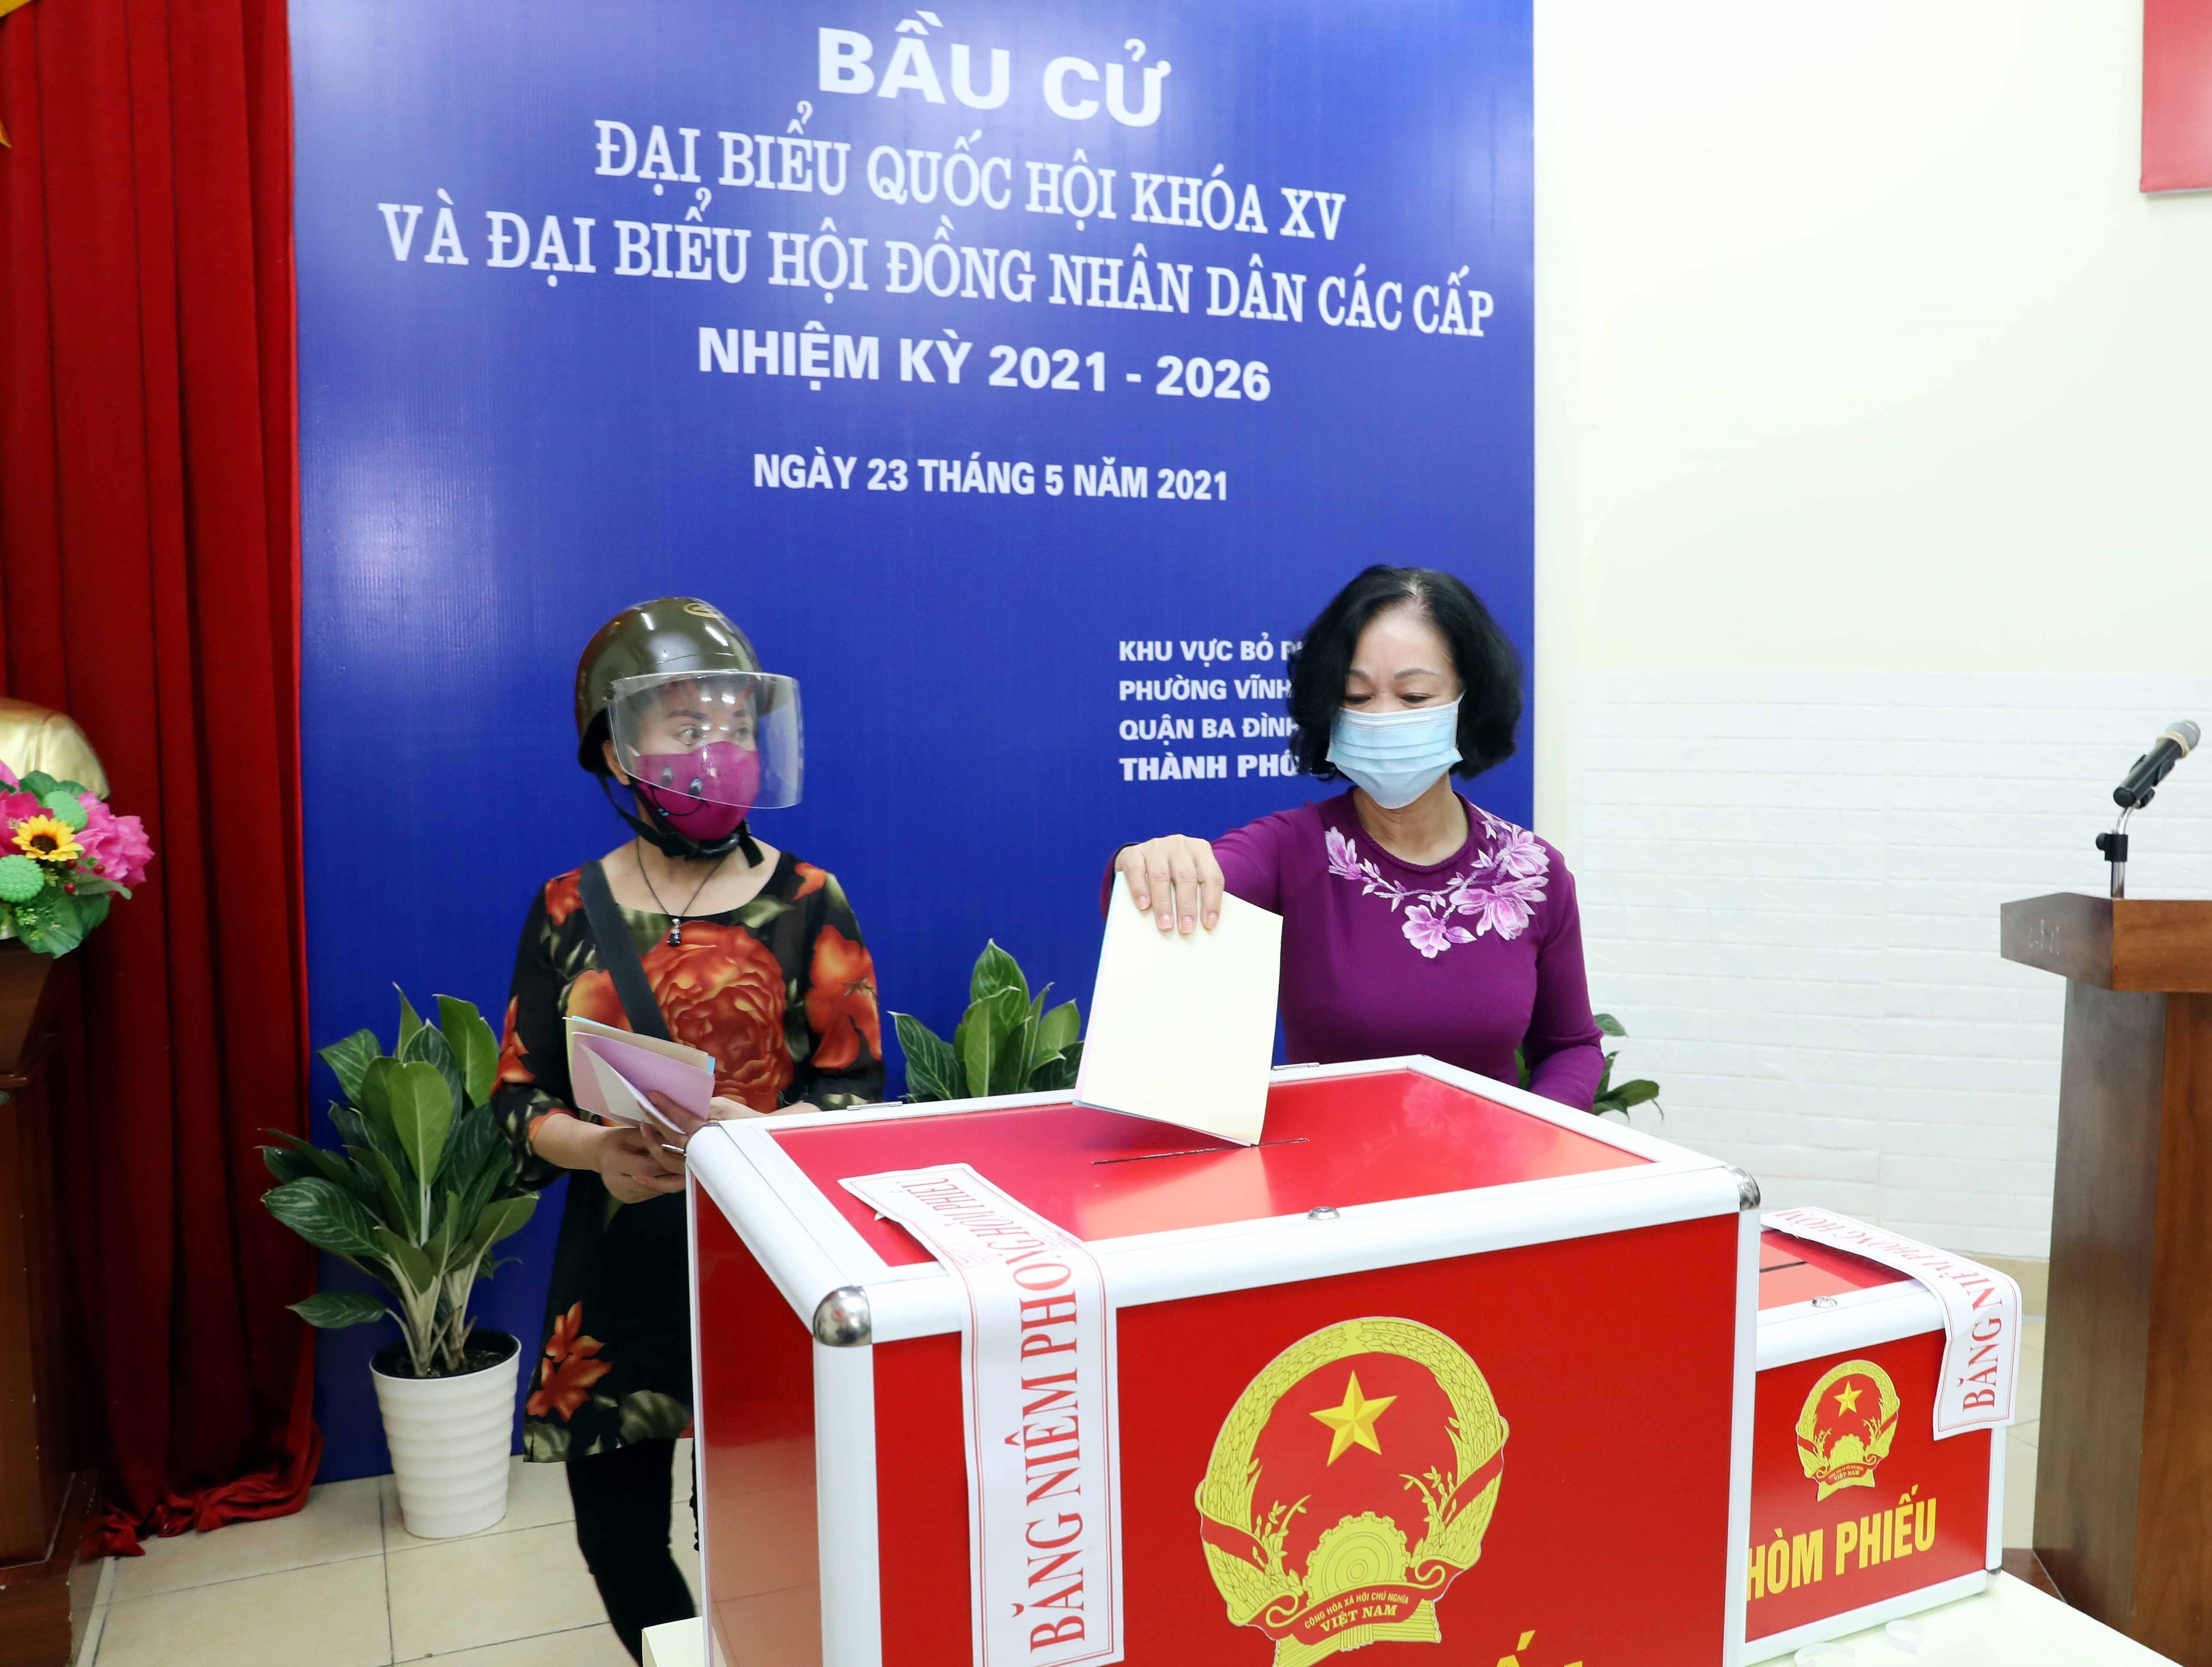 Voters nationwide cast ballots hinh anh 6